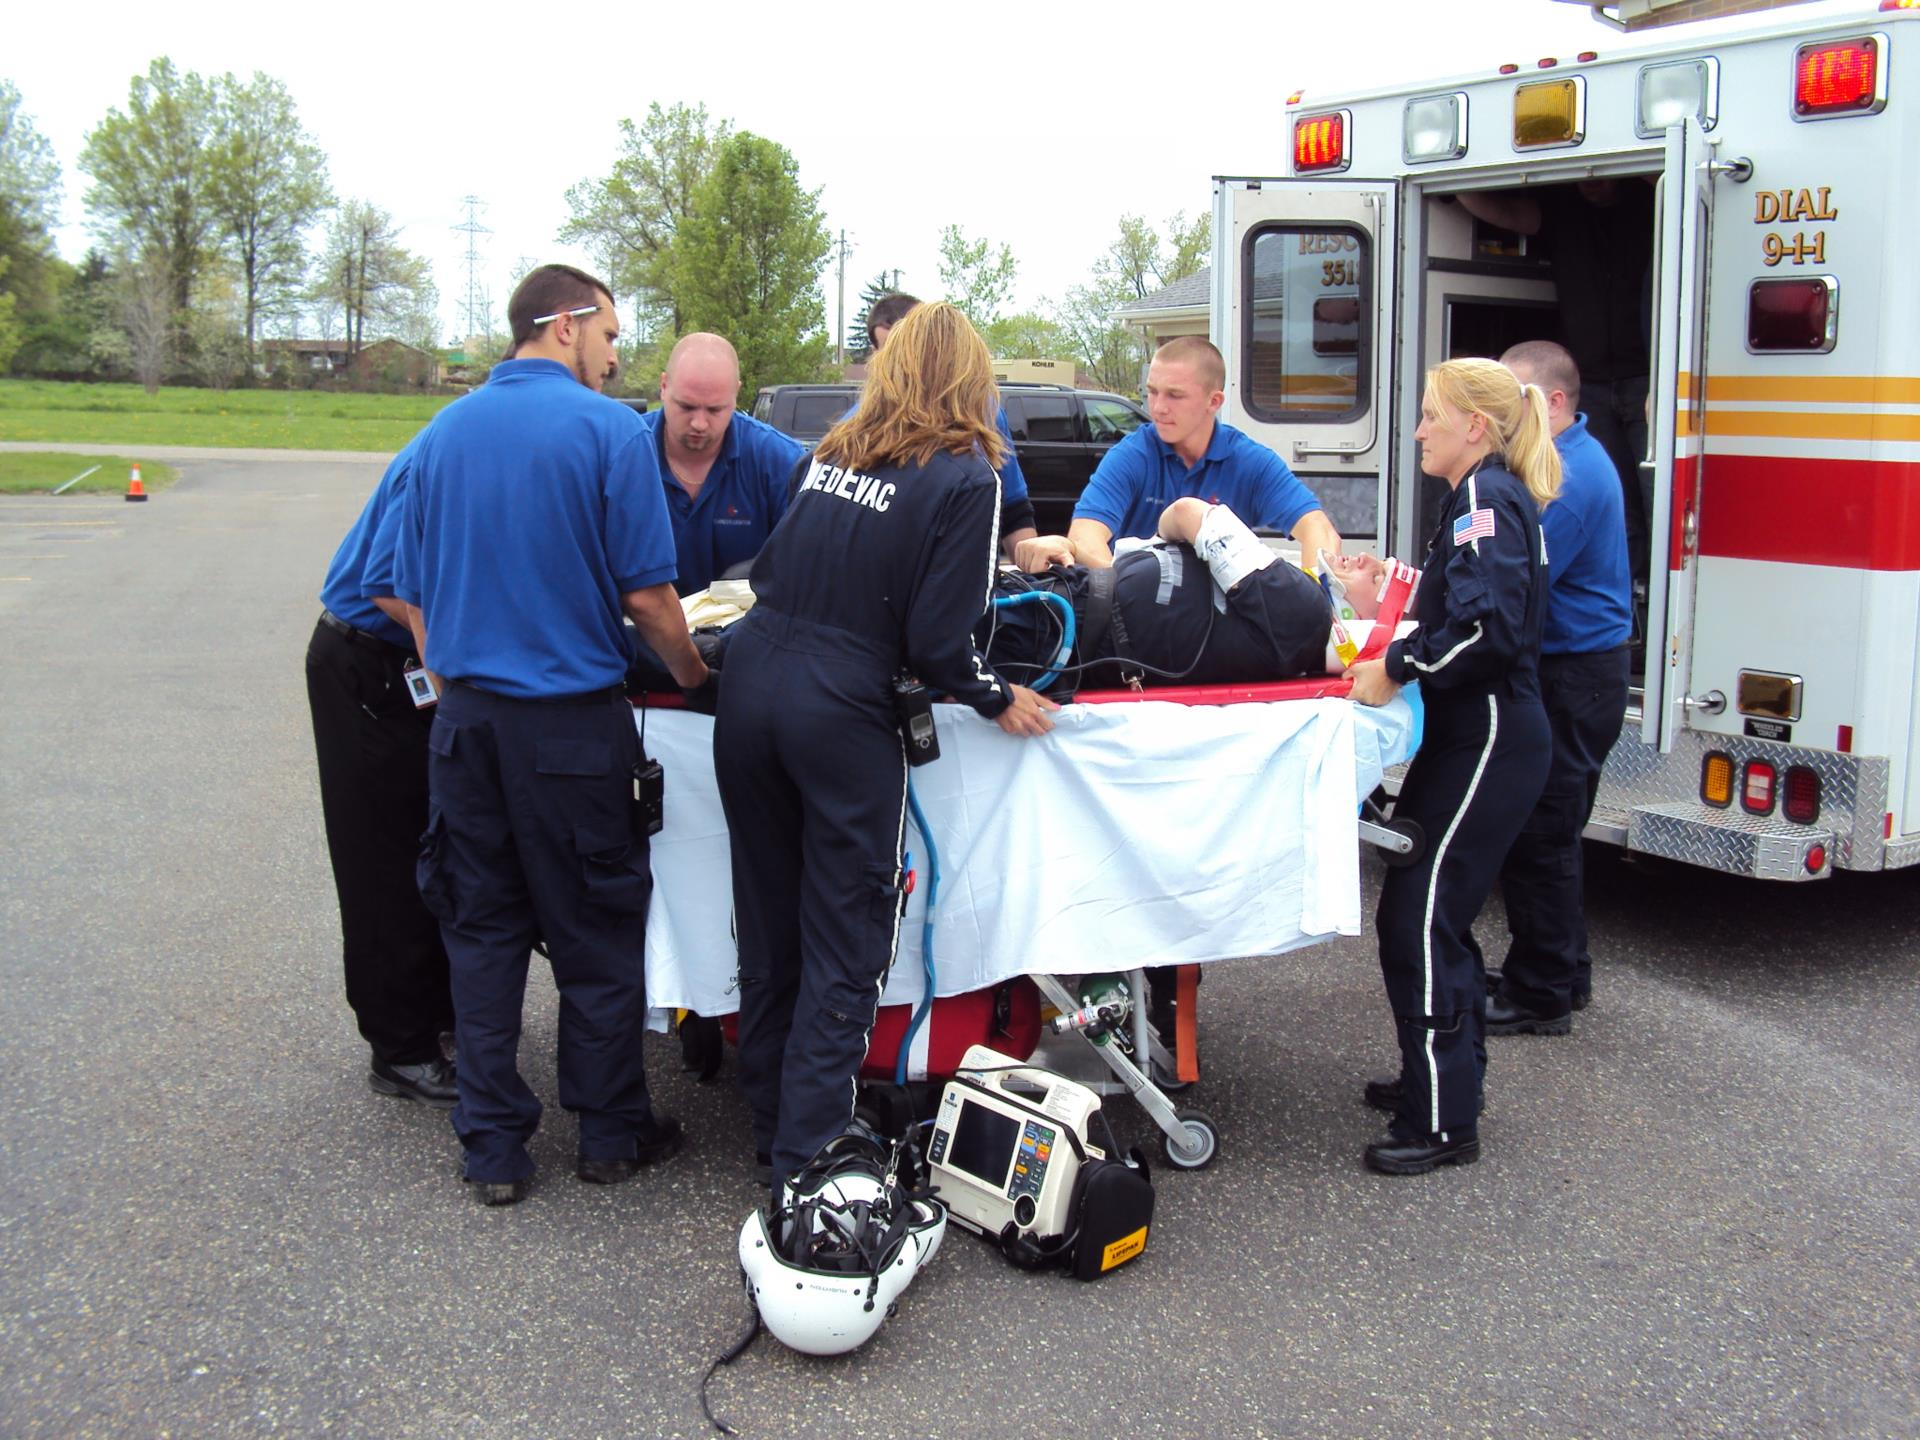 Emergency Medical Technicians outside of amubulance